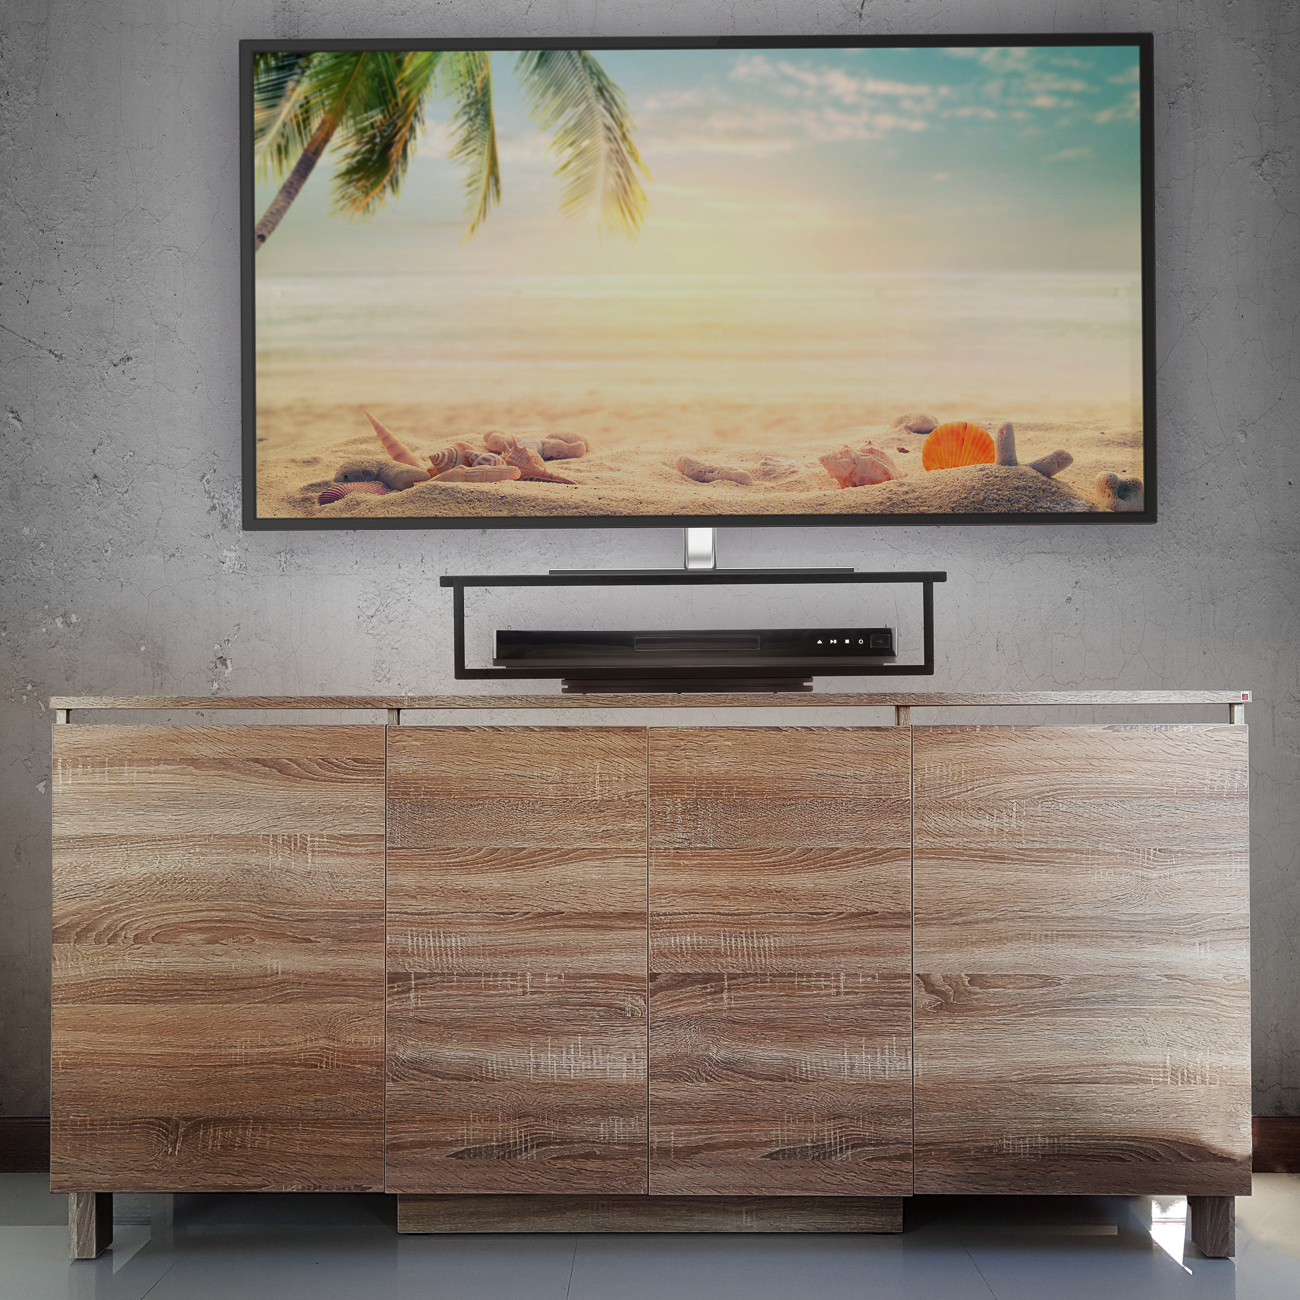 Black Bamboo 2 Tier Tv Swivel Stand – Prosumer's Choice Throughout Tier Entertainment Tv Stands In Black (View 15 of 15)